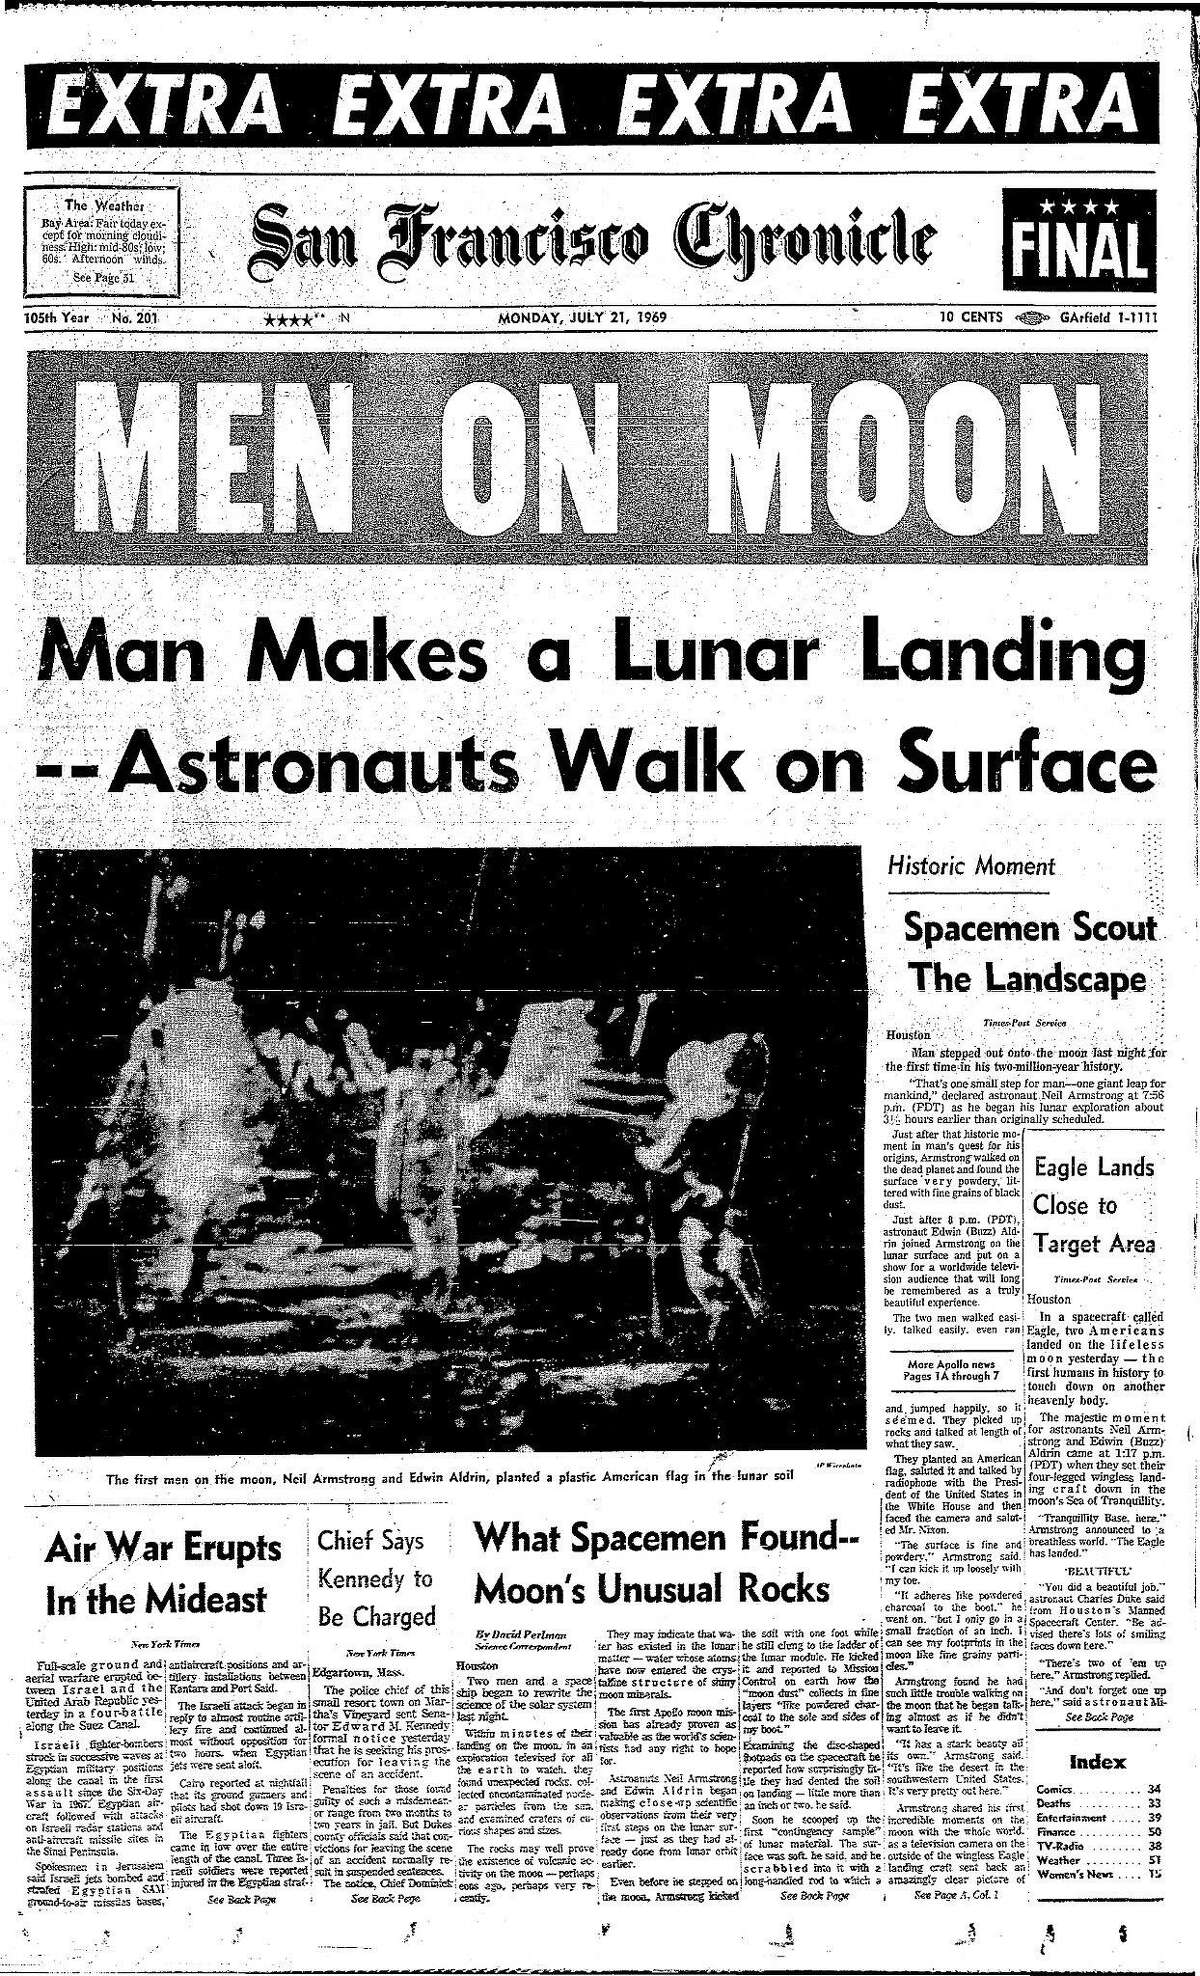 Historic Chronicle Front Page July 21, 1969 American astronauts walk on the Moon Chron365, Chroncover